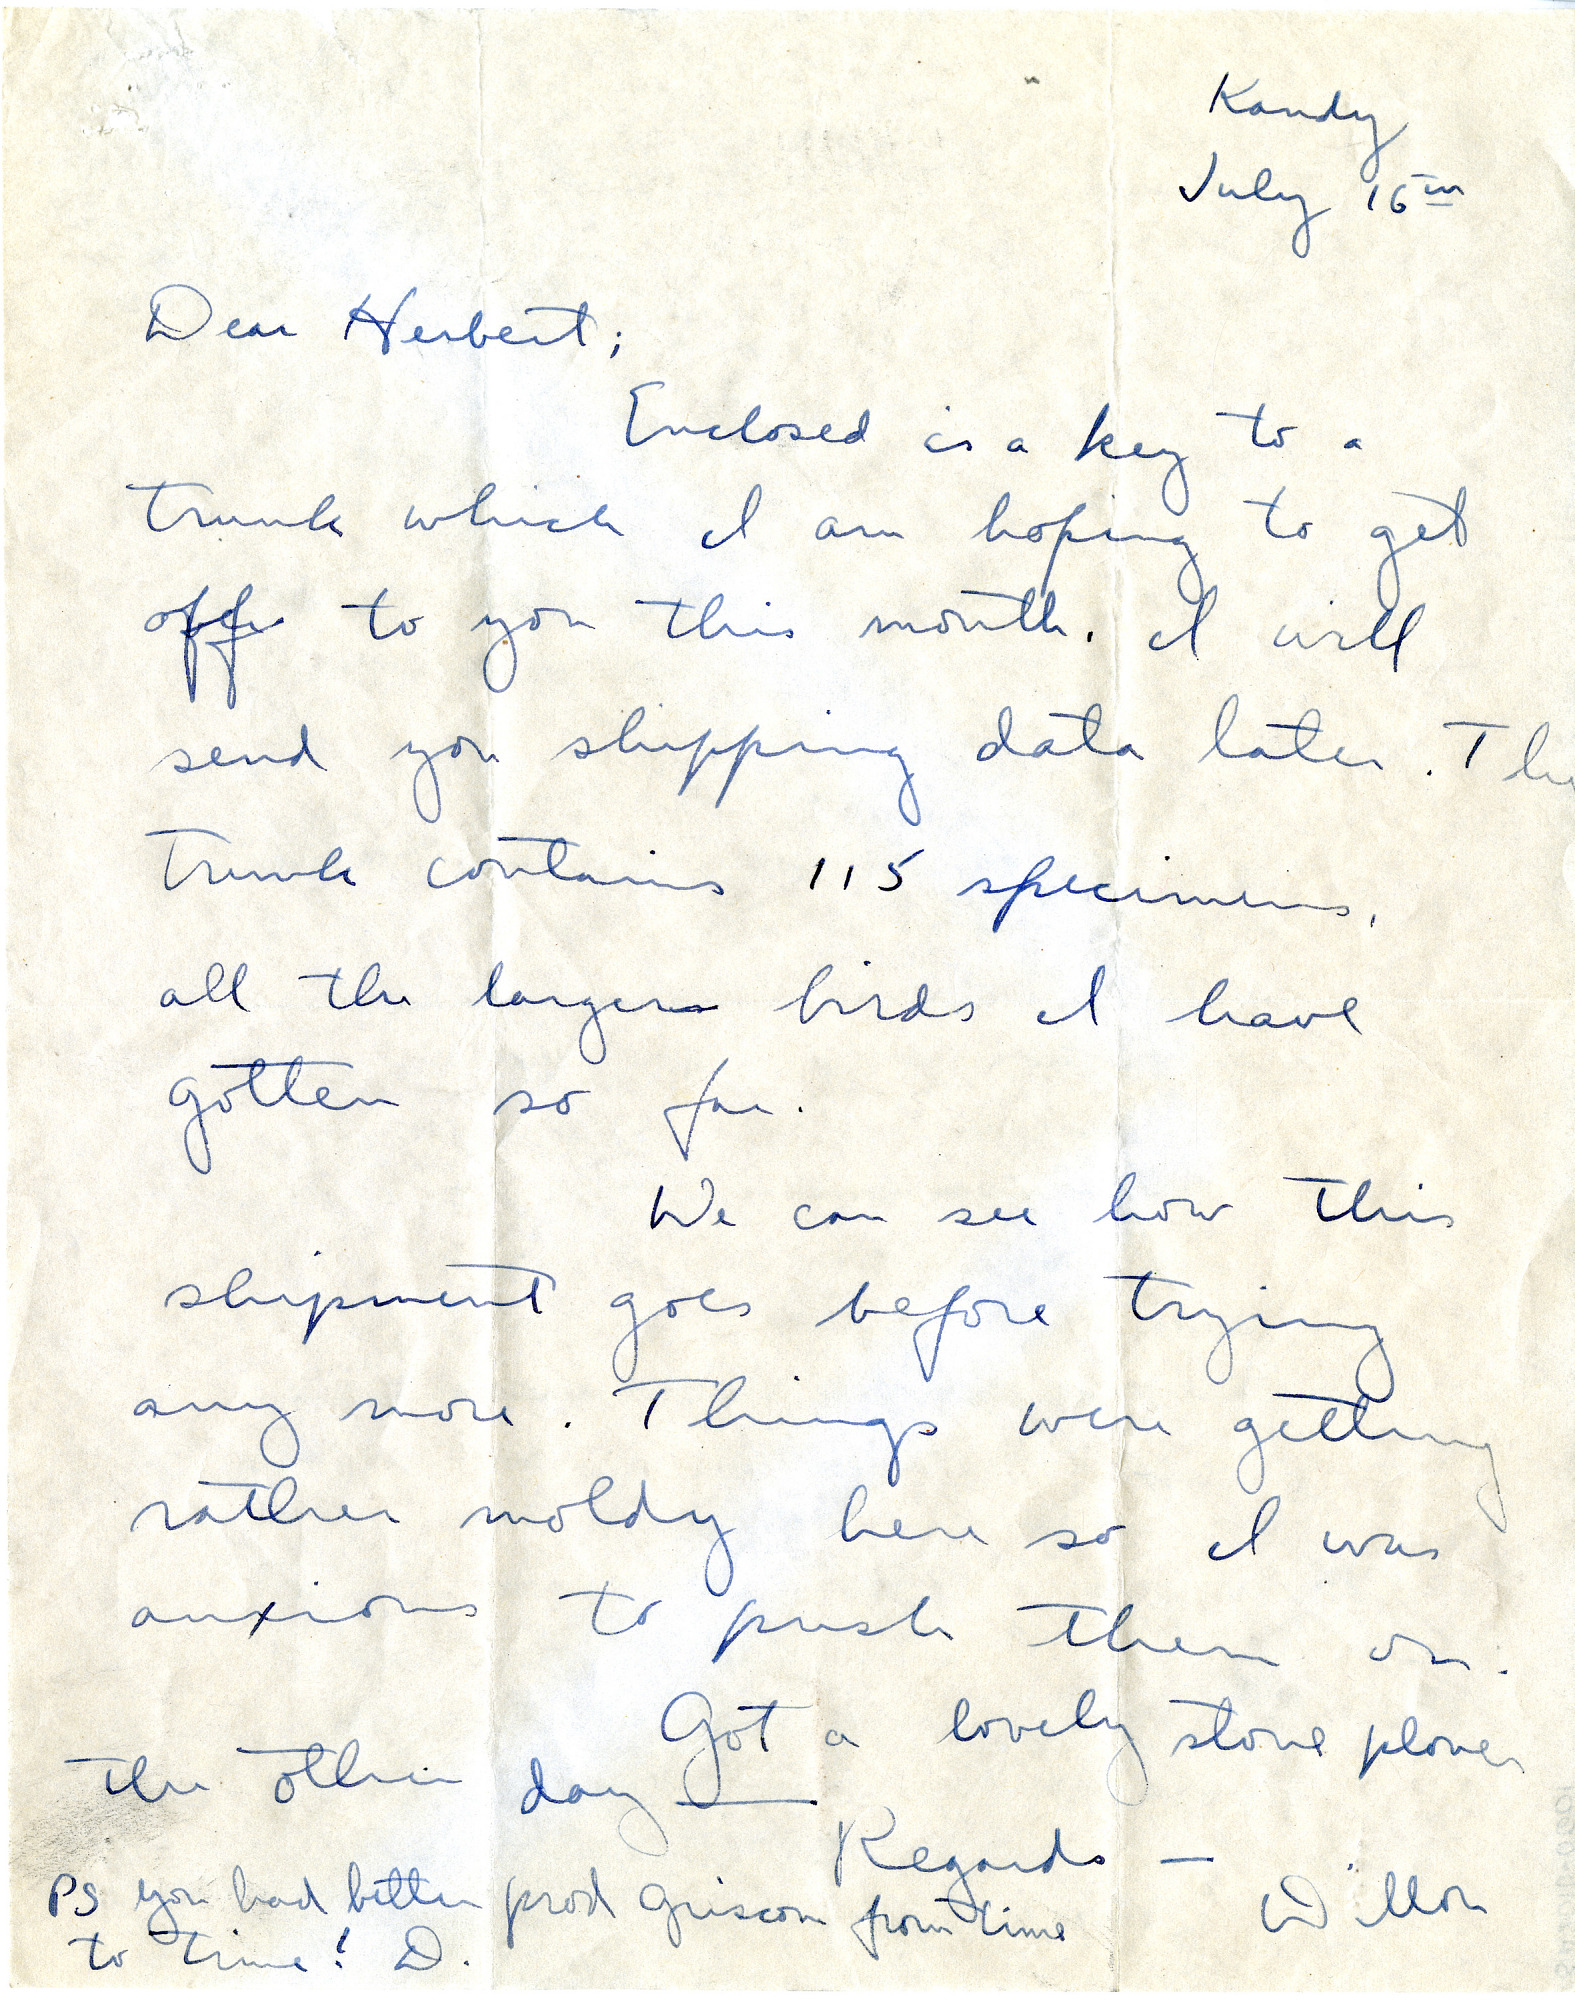 Letter to Herbert Friedmann from S. Dillon Ripley